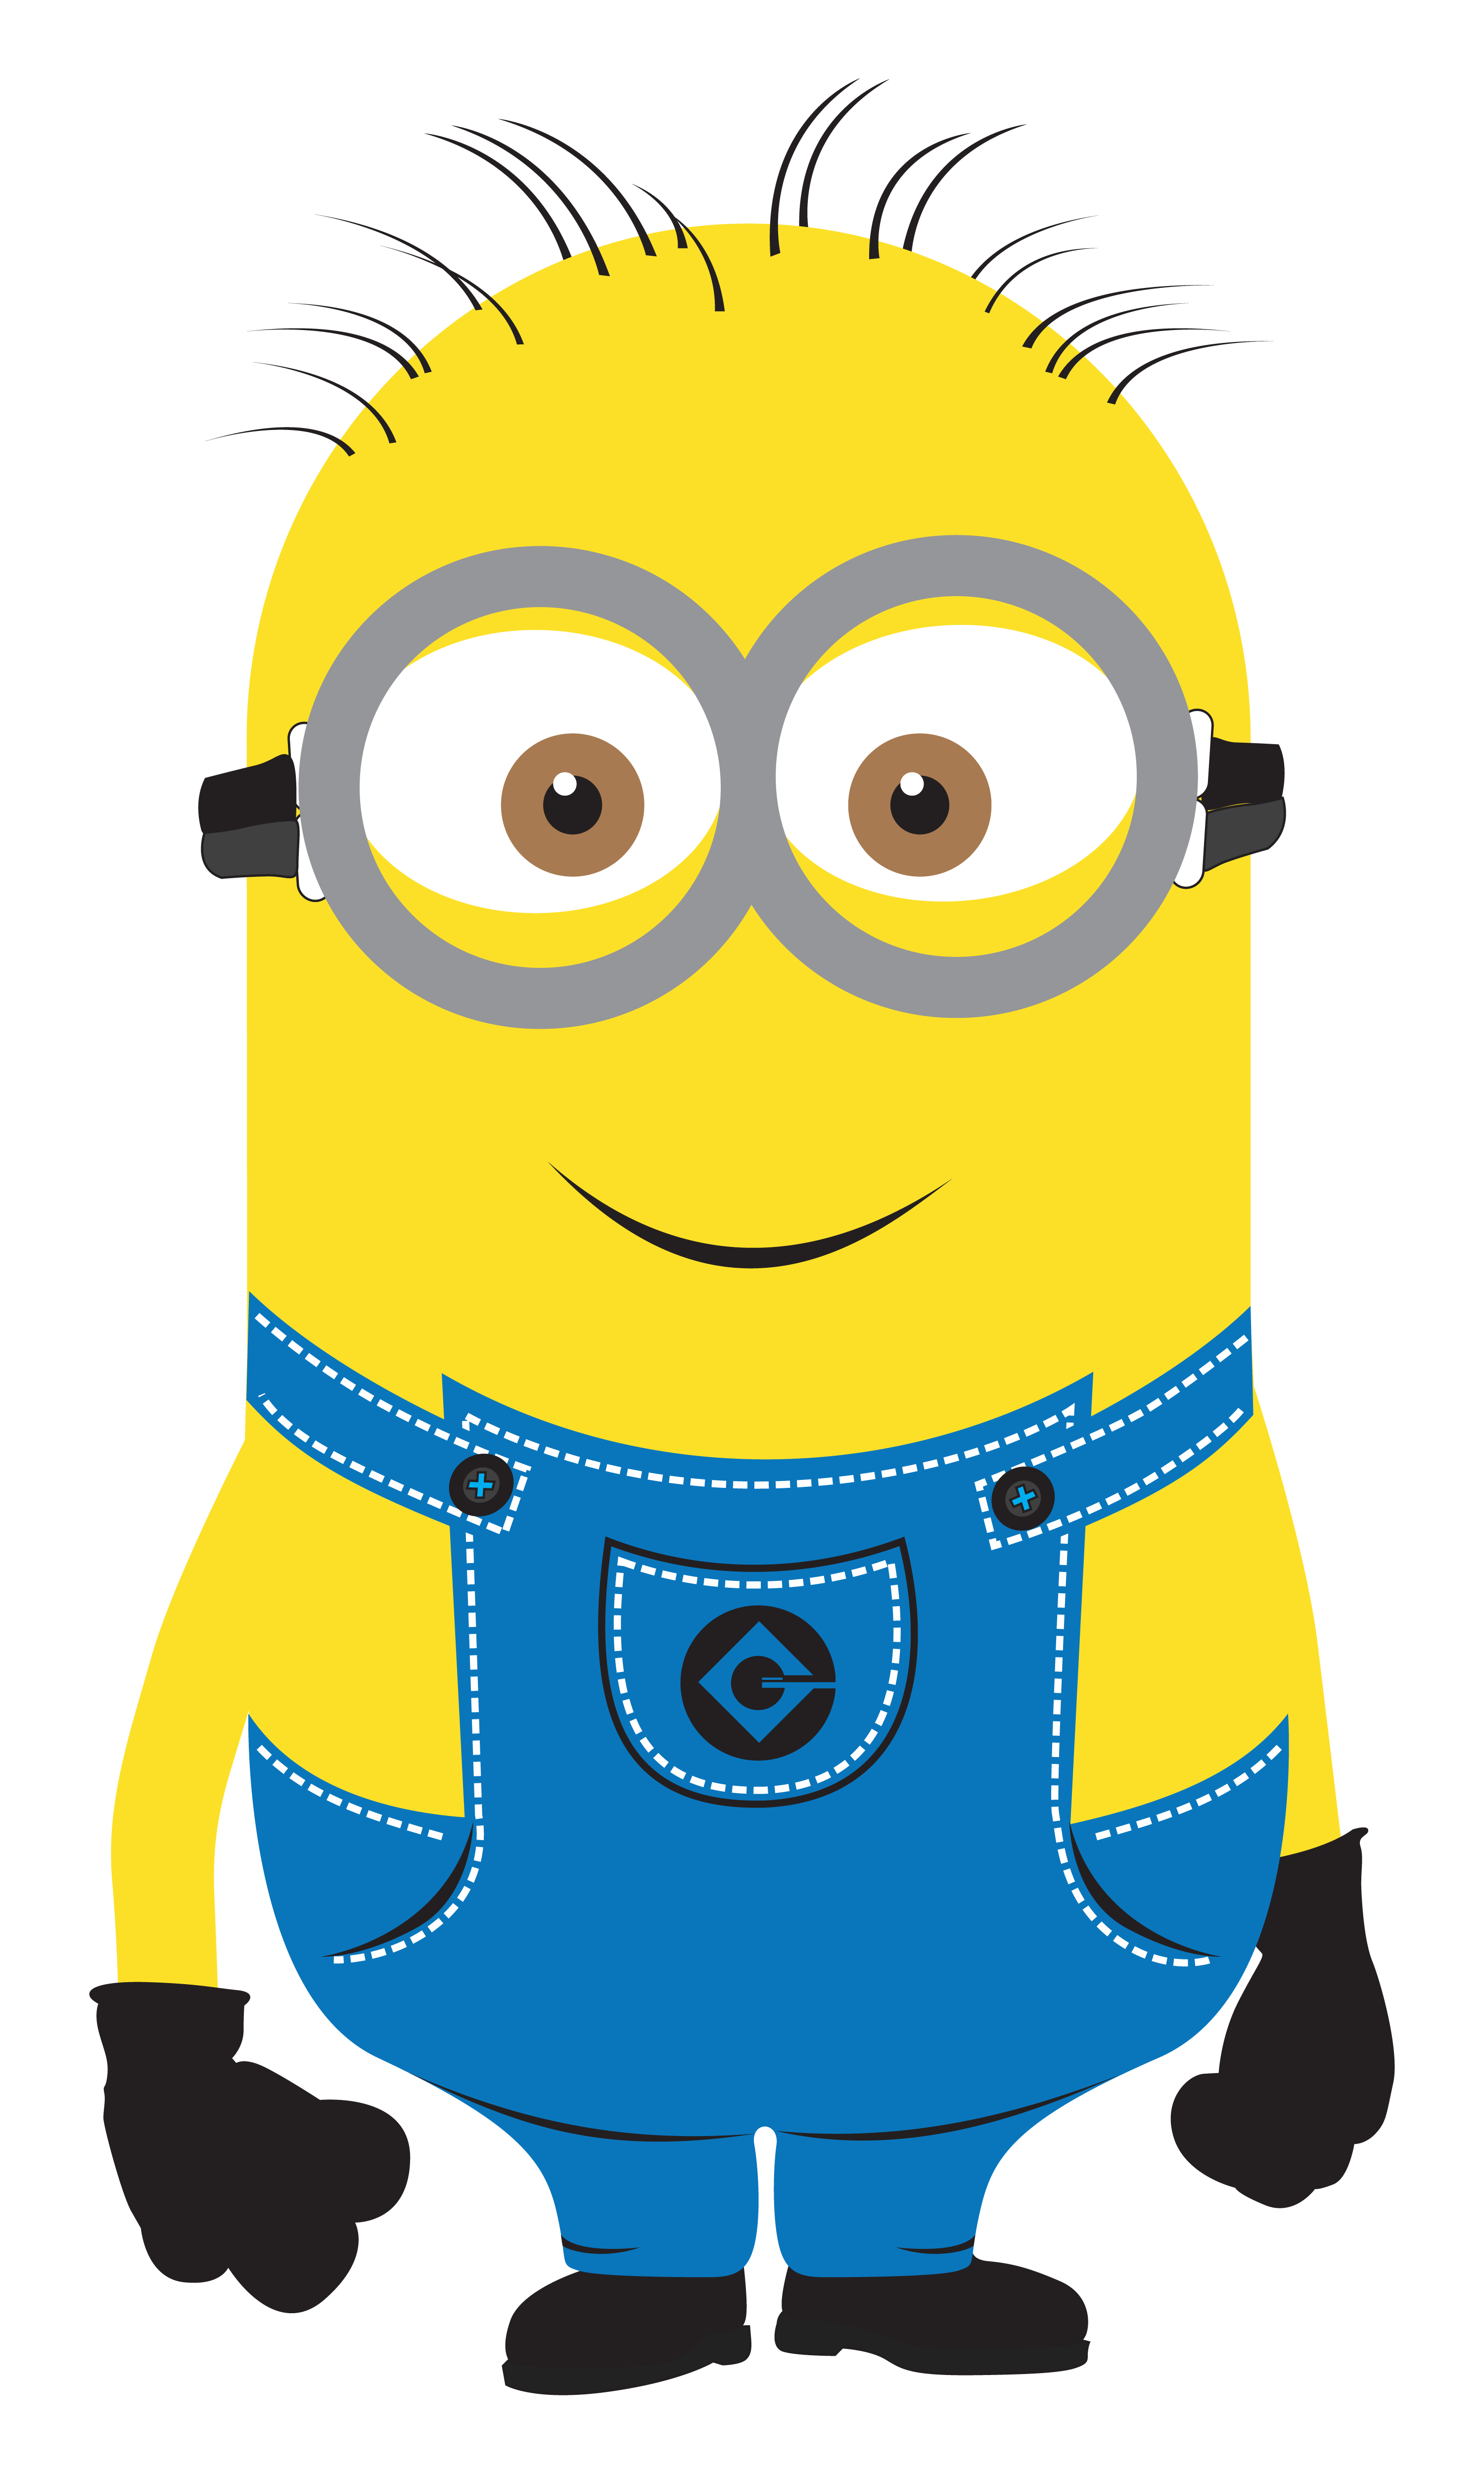 Despicable Me 2 Minions Vector  Ai Eps Cdr    High Res Pngs